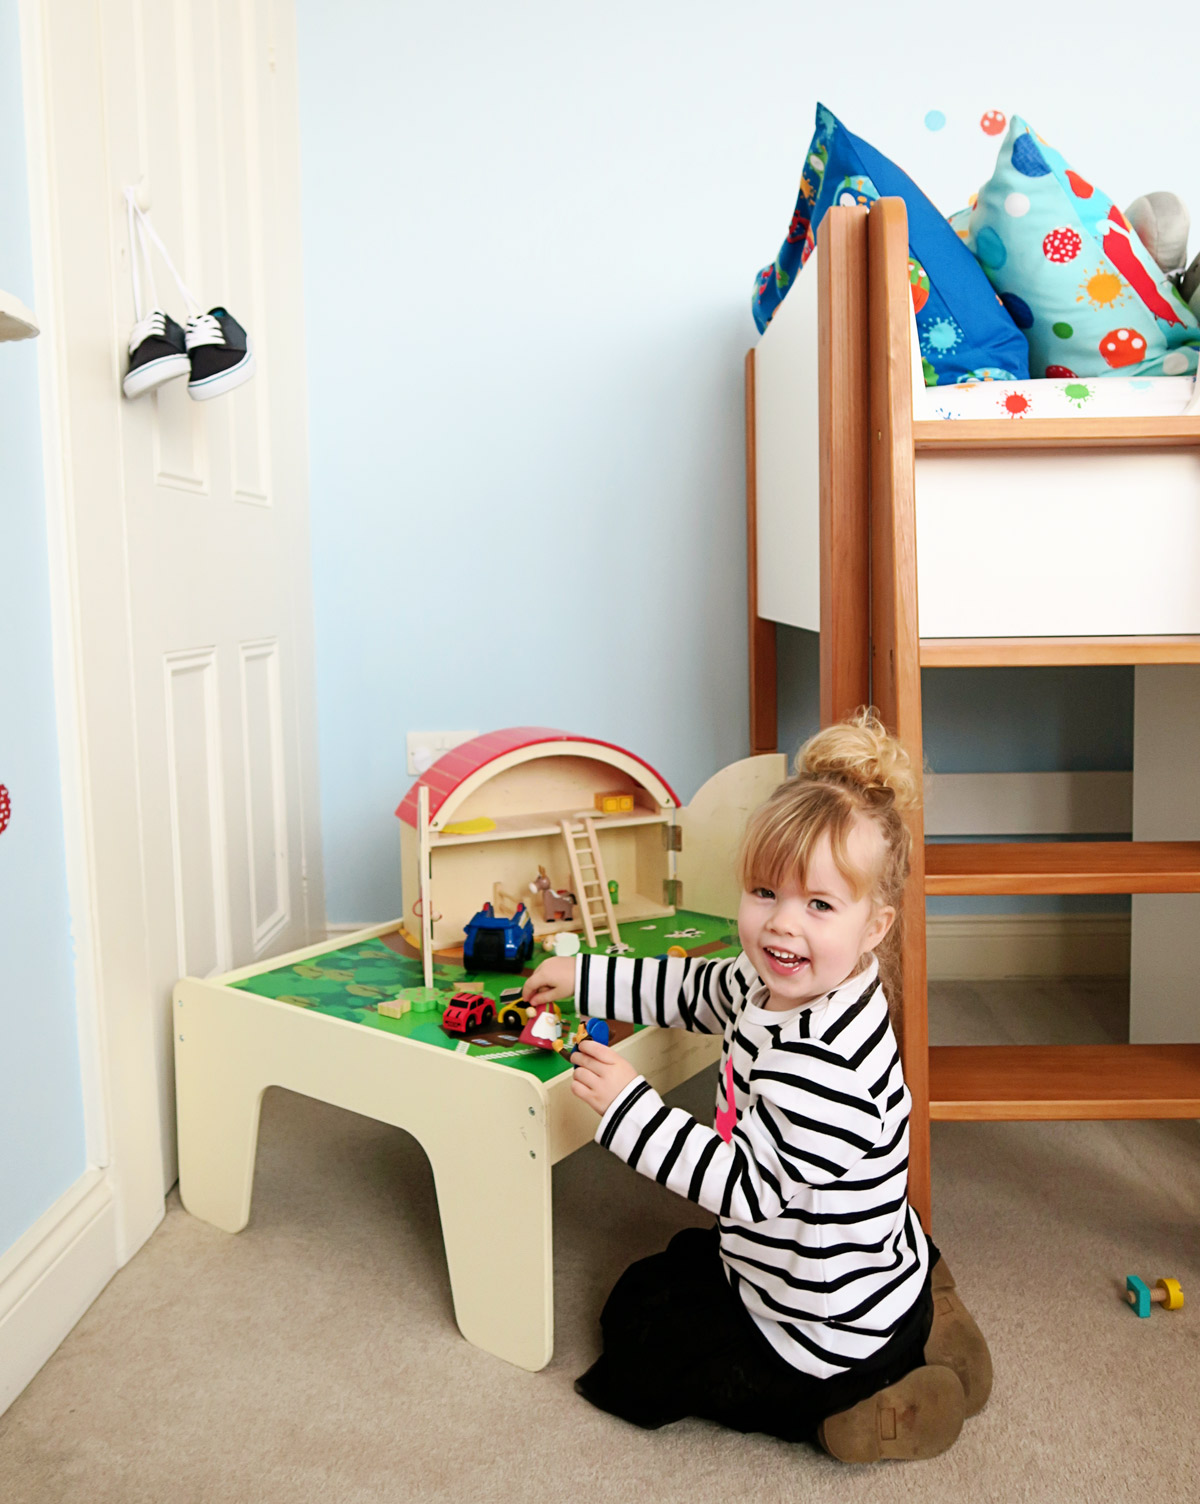 A Visit to the George at Asda Home- #GeorgeHome